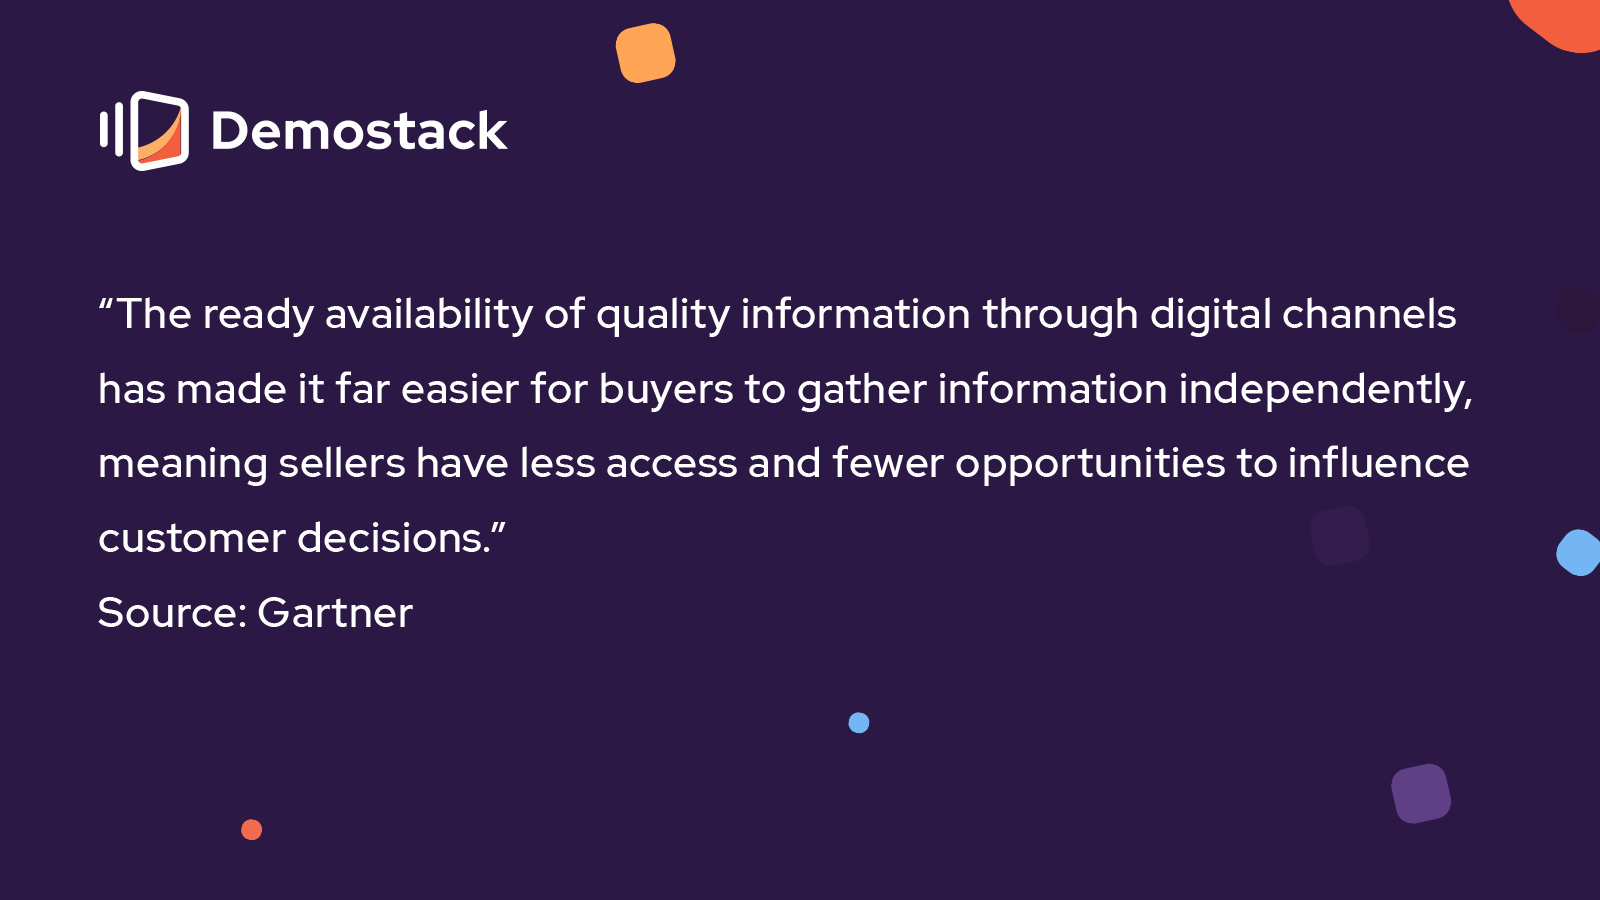 """""""The ready availability of quality information through digital channels has made it far easier for buyers to gather information independently, meaning sellers have less access and fewer opportunities to influence customer decisions,"""" reports Gartner."""